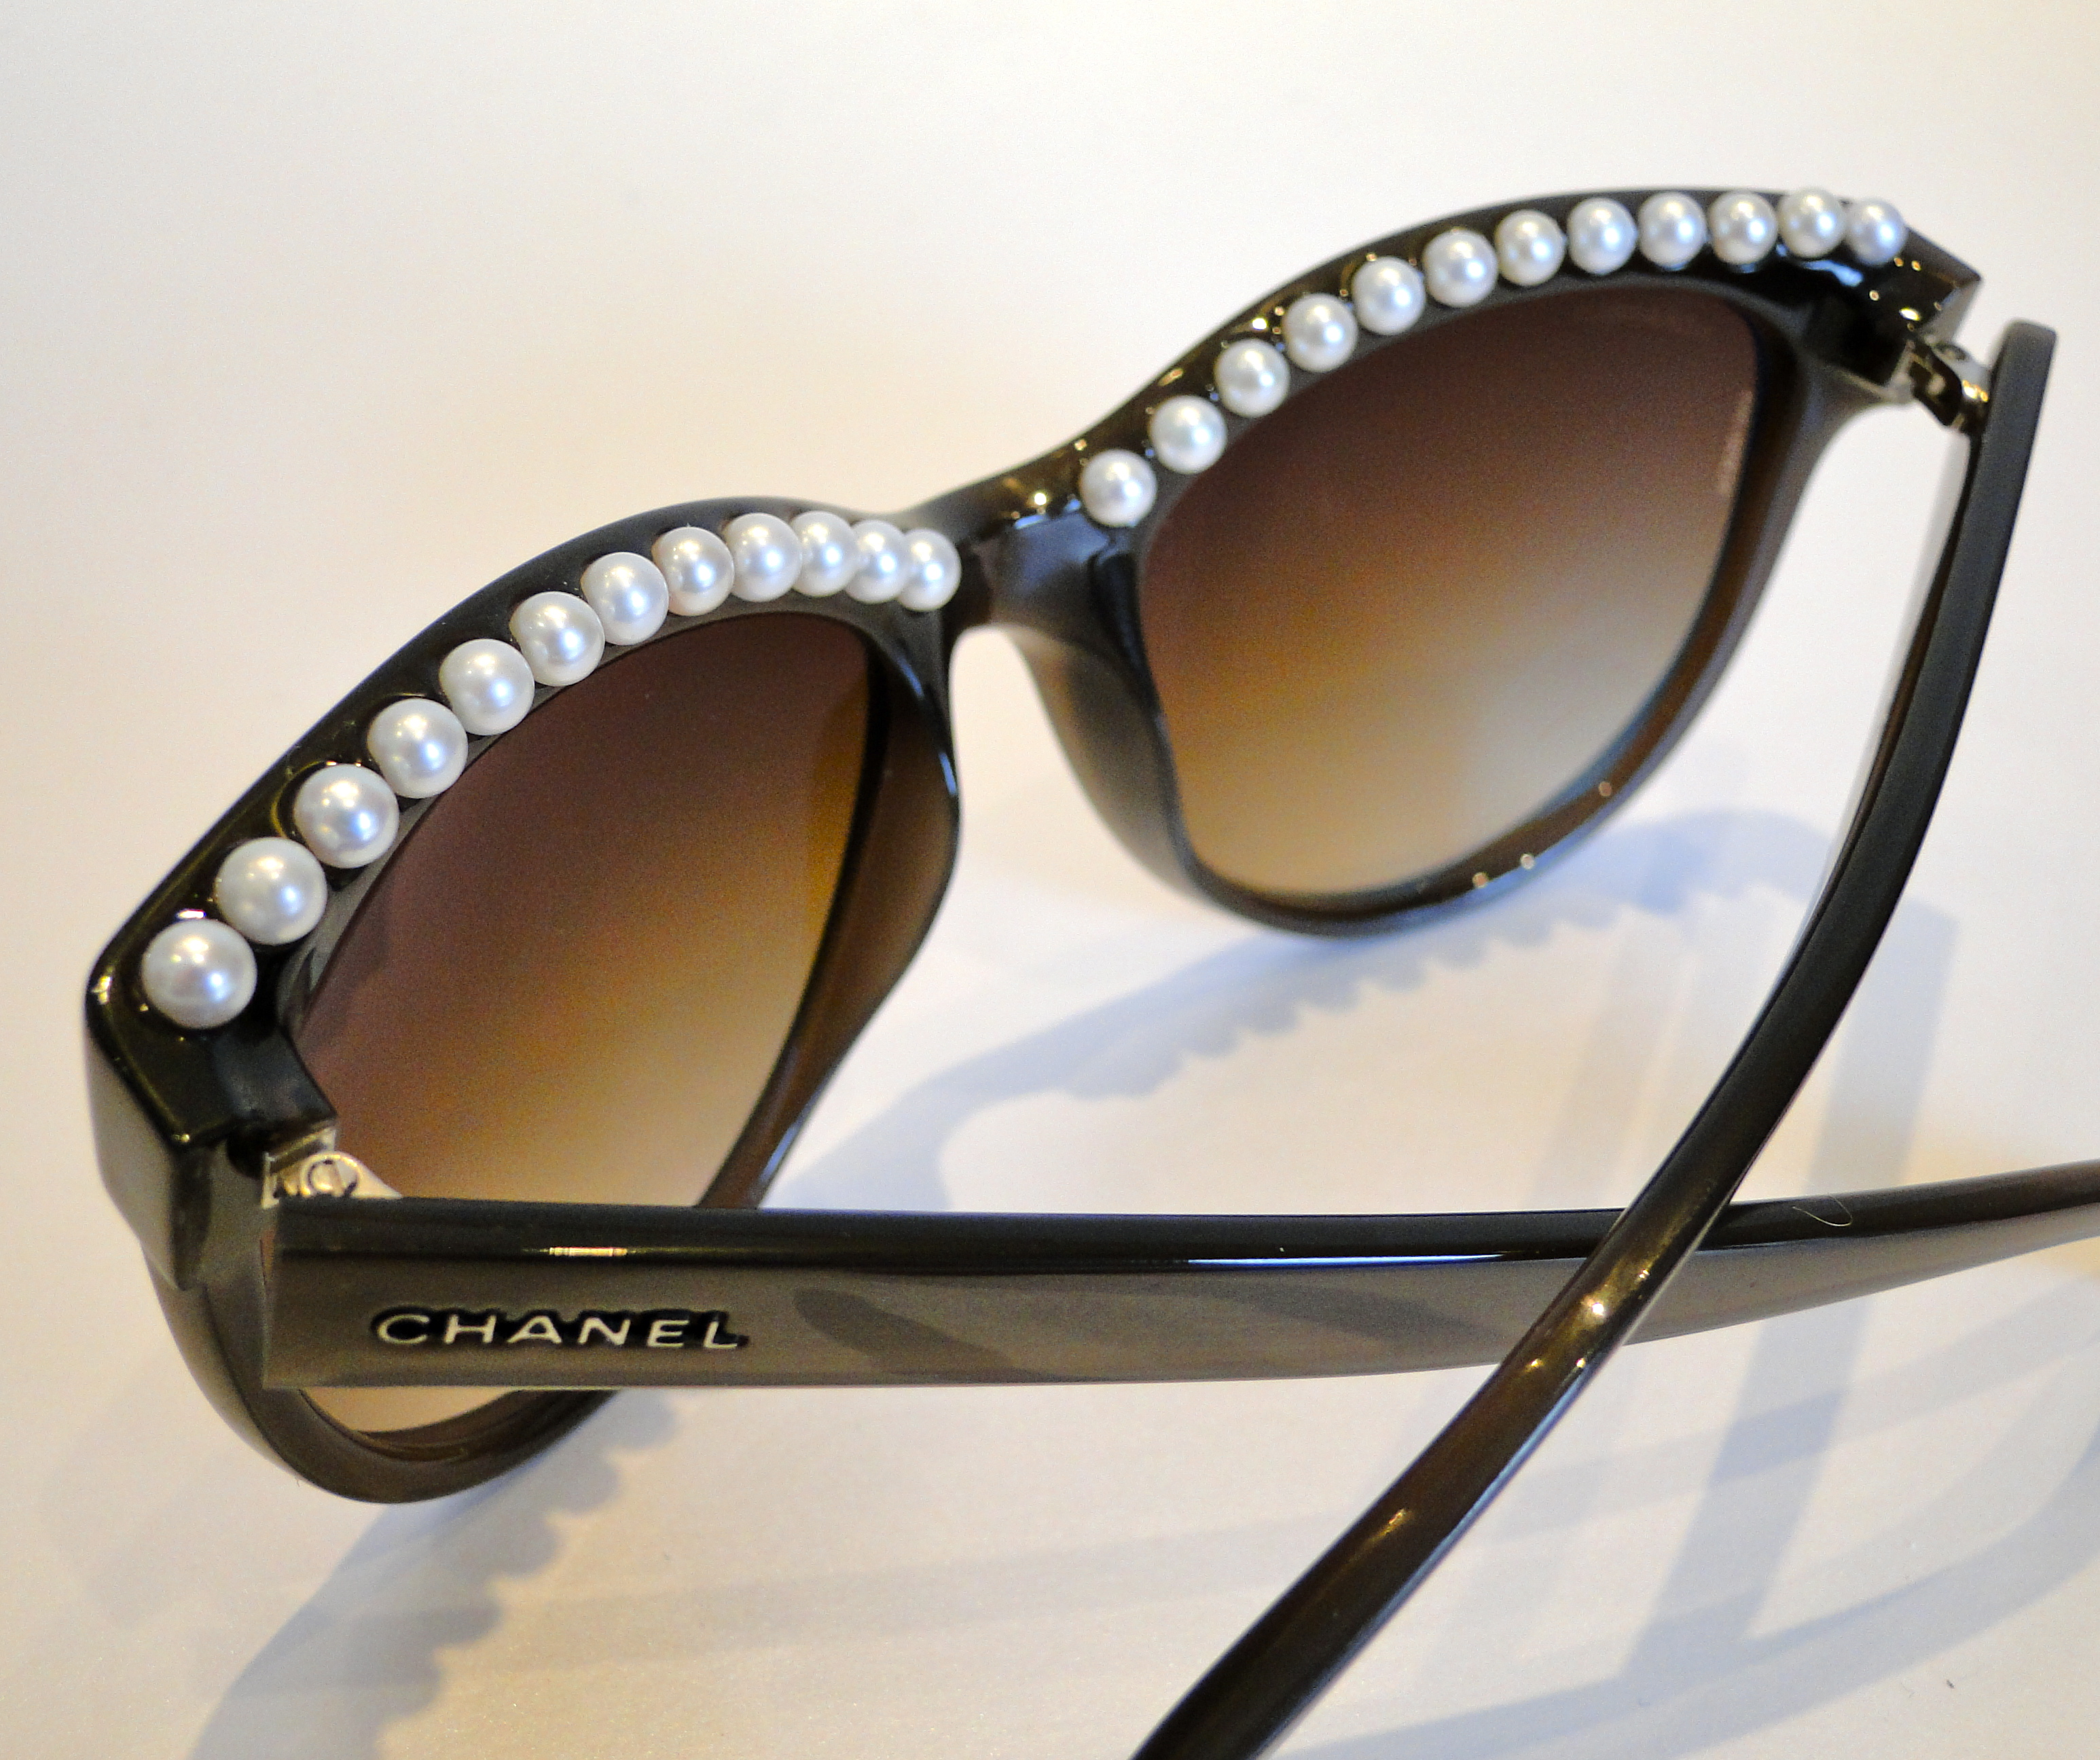 Chanel Pearl Sunglasses | The Luxe List